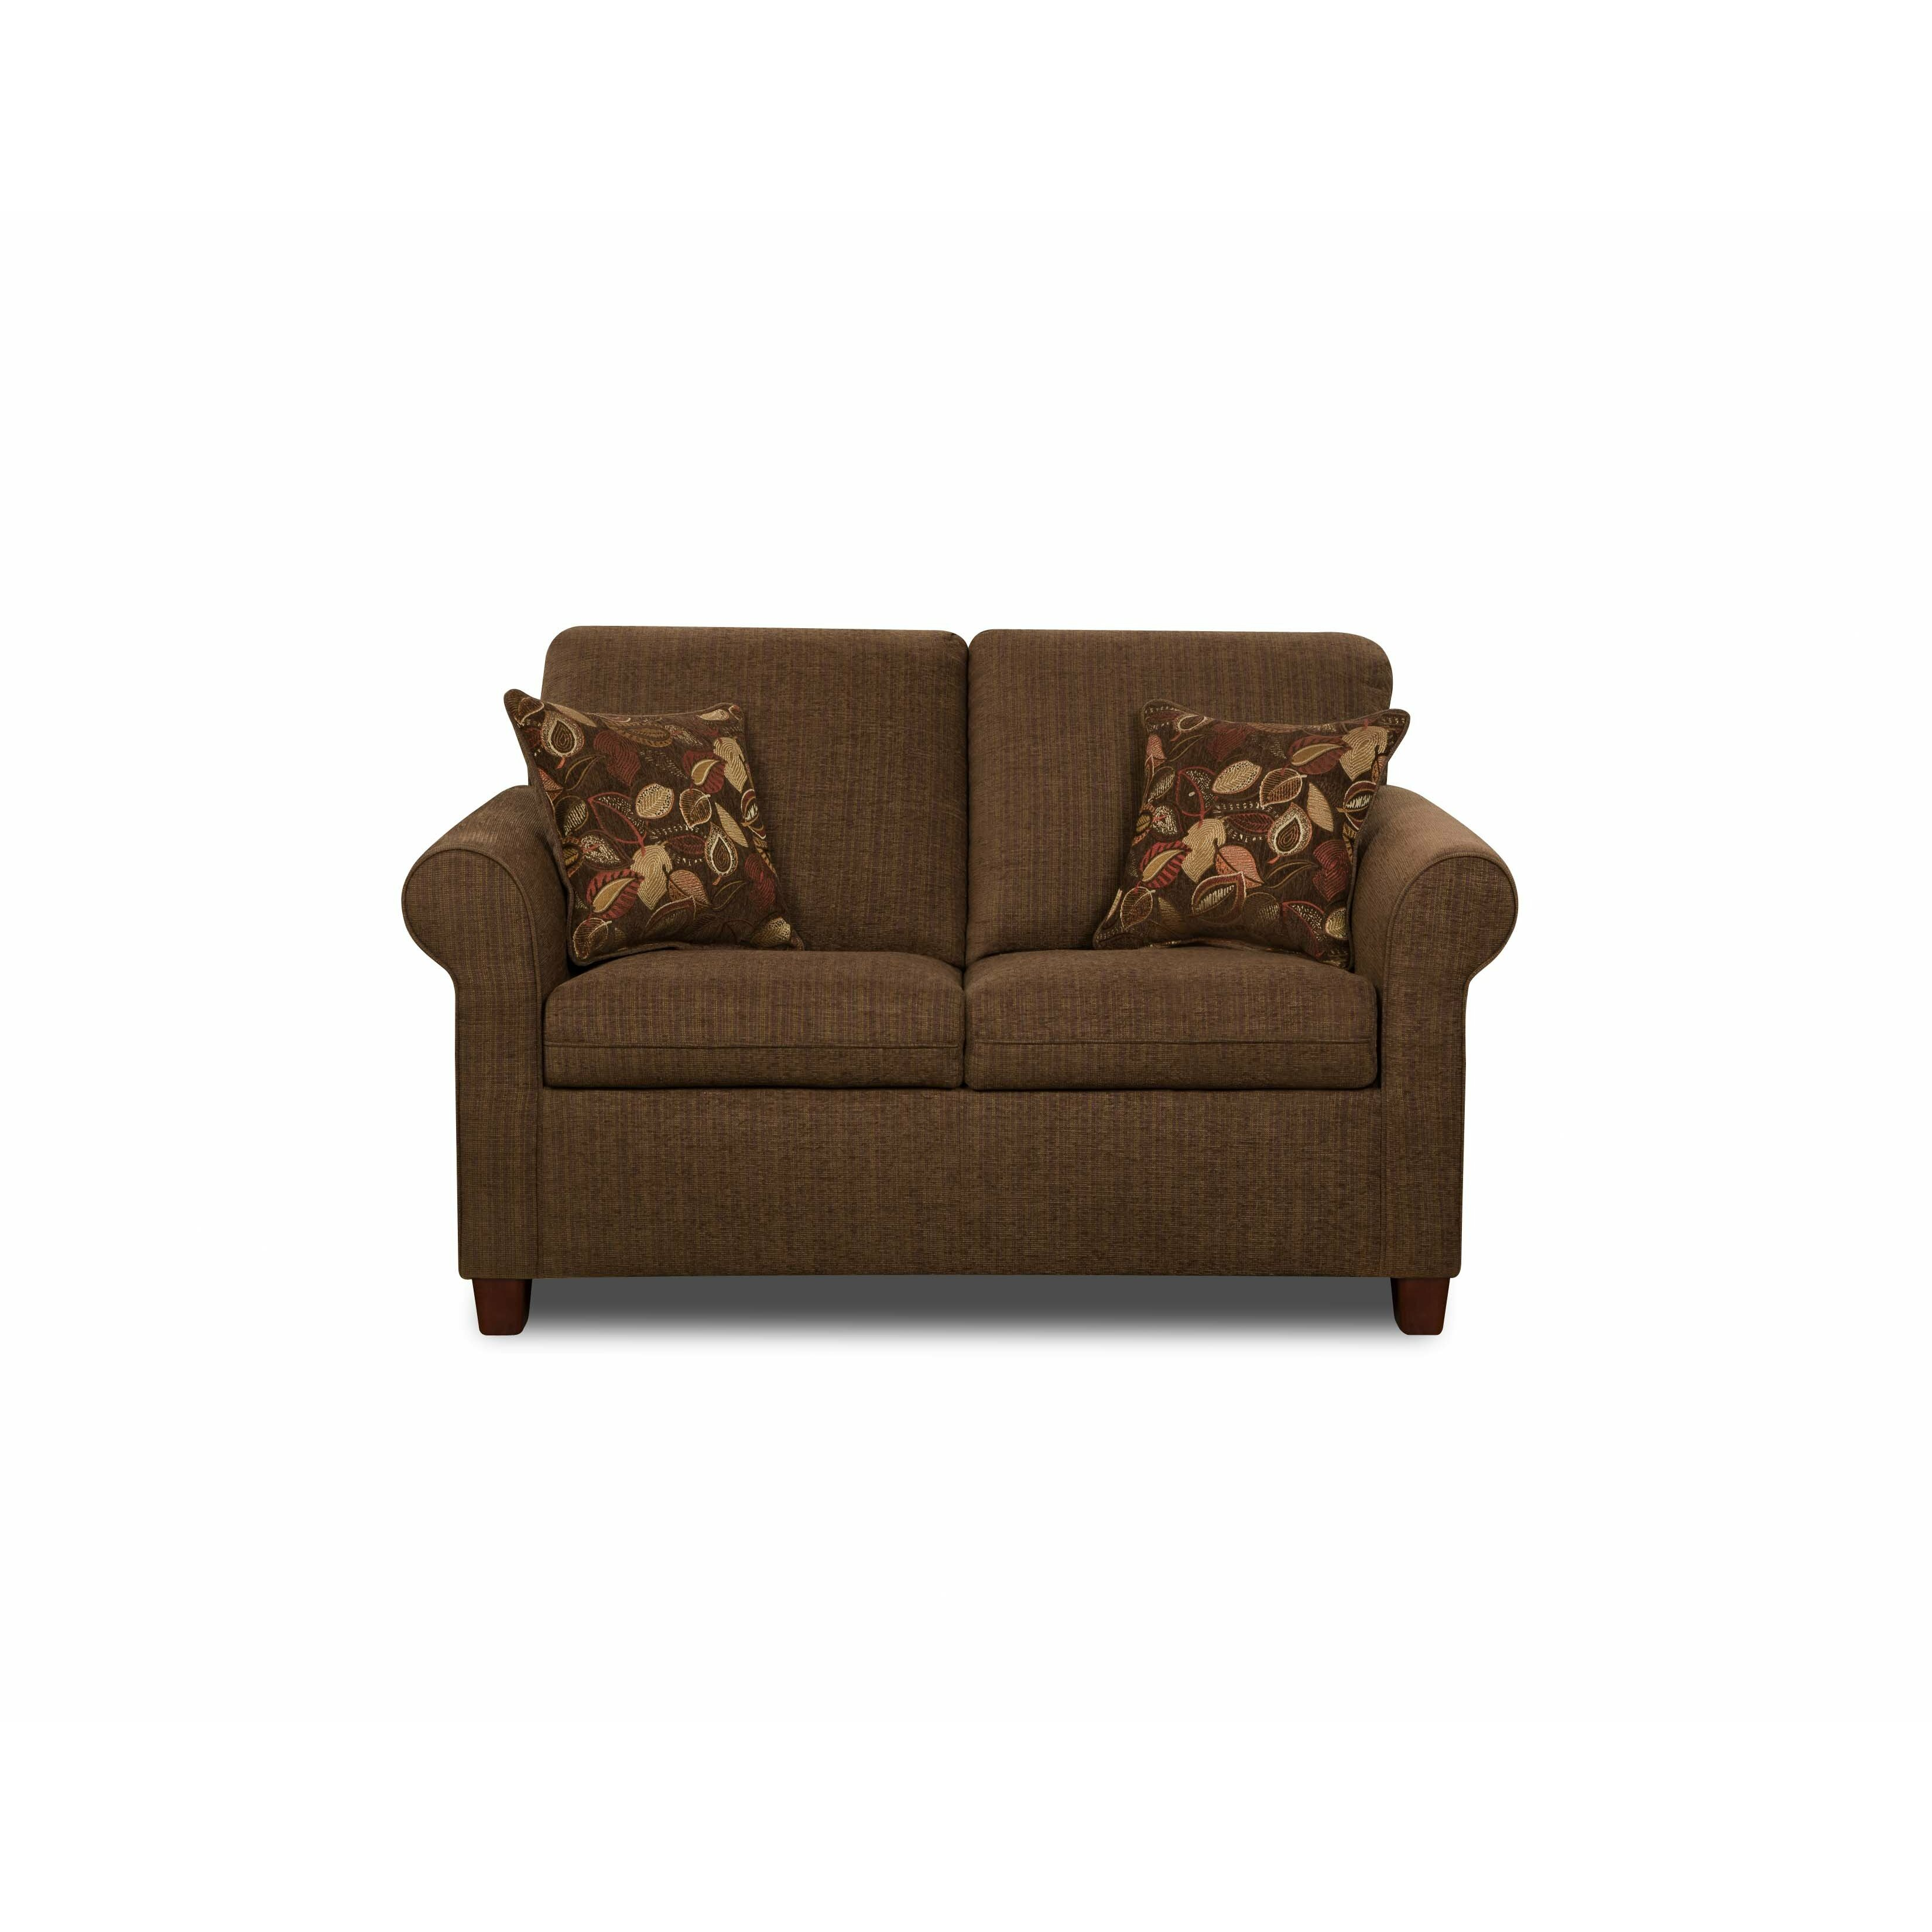 Simmons Sleeper Sofa: Simmons Upholstery Cullen Twin Sleeper Sofa & Reviews